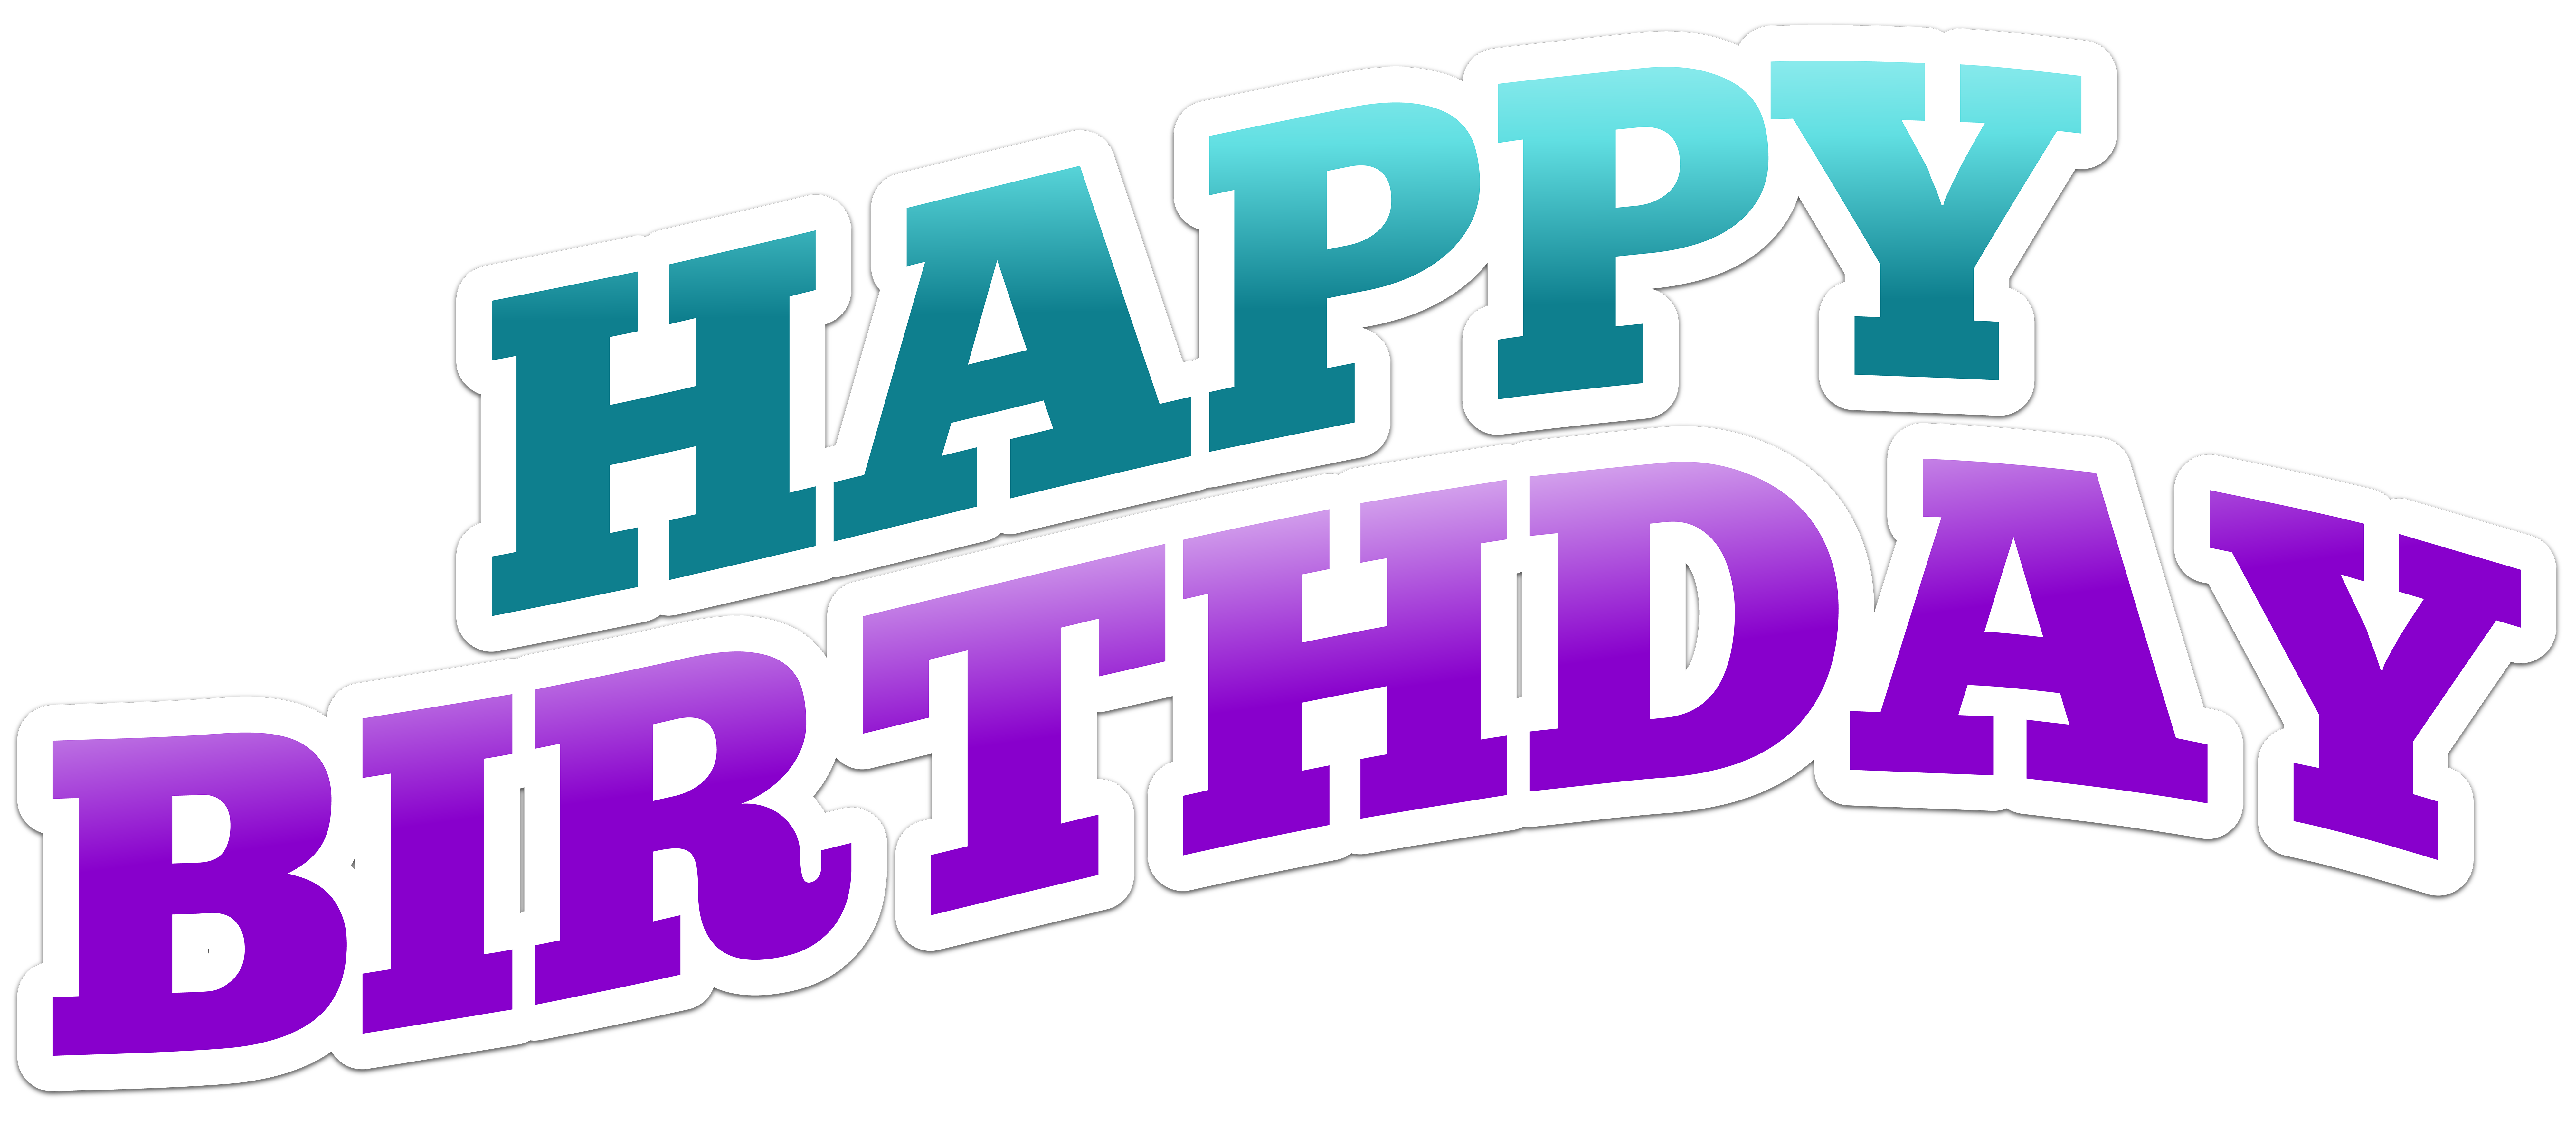 Happy birthday png text. Clip art image gallery